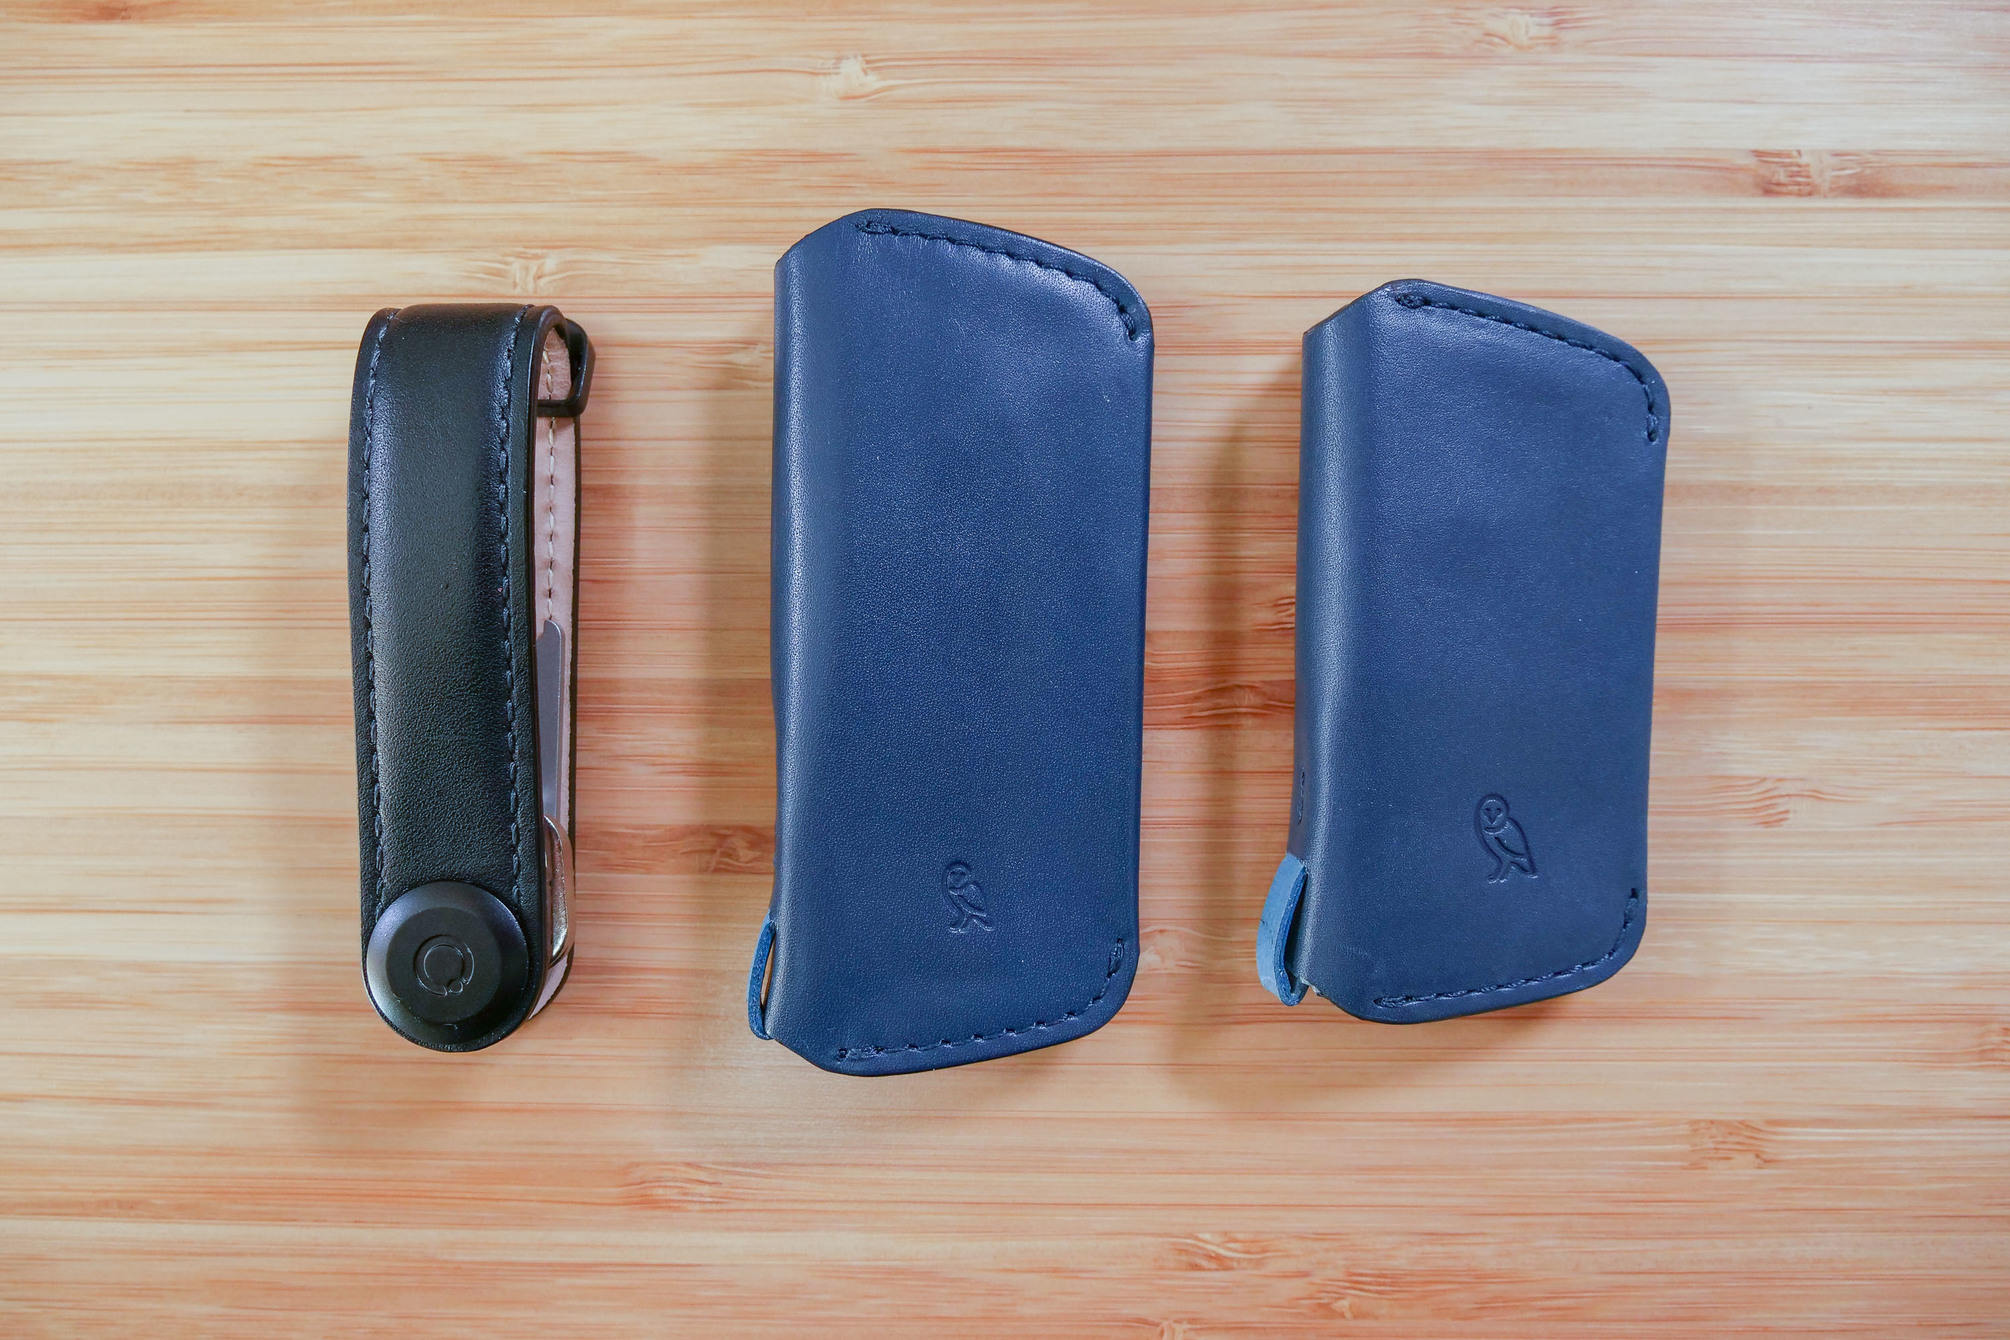 Orbitkey vs Bellroy